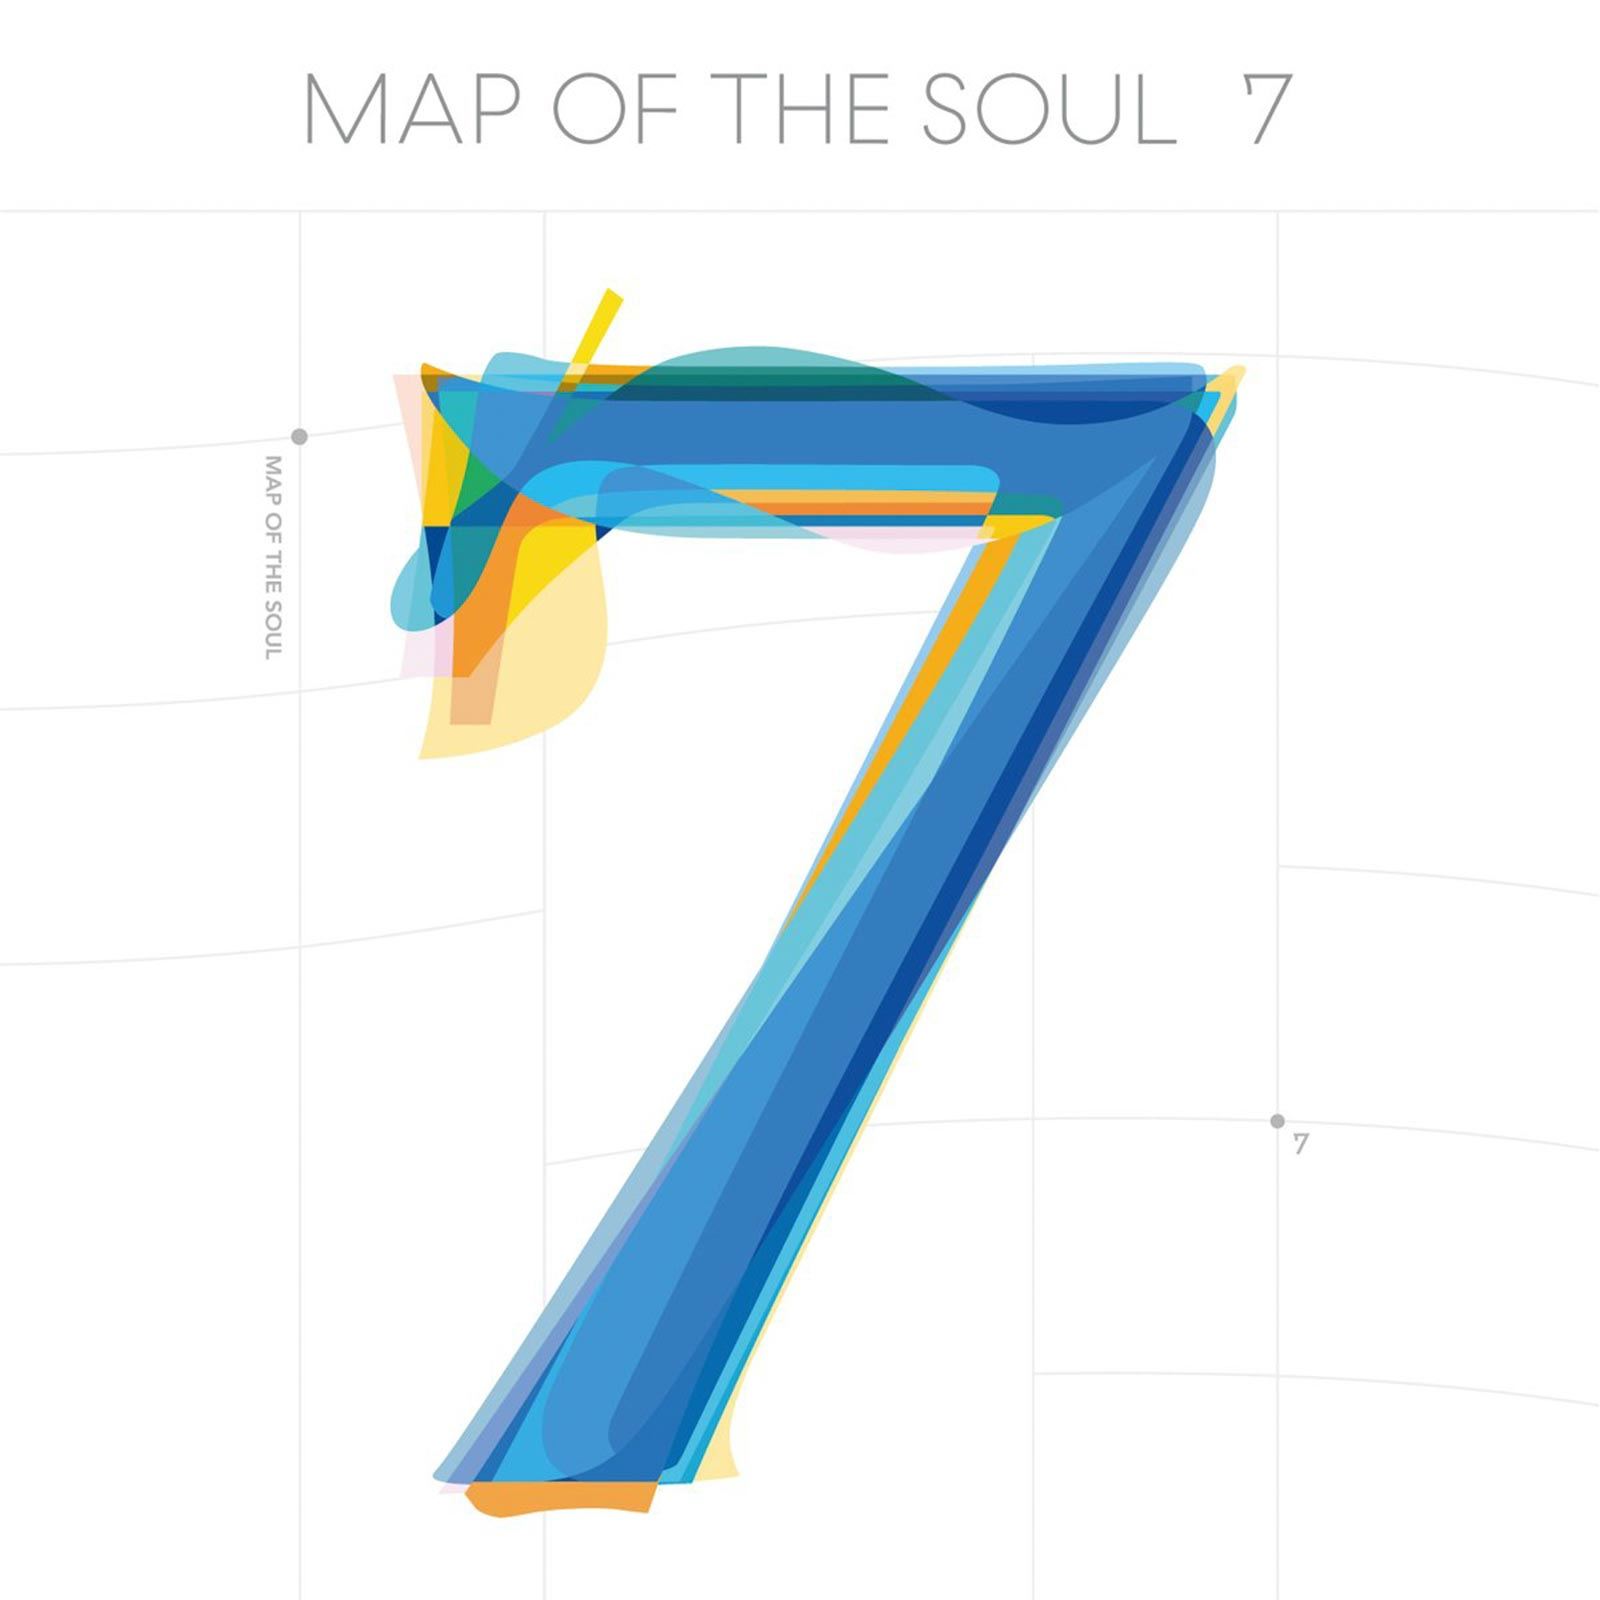 BTS release new album Map of the Soul 7, featuring lead single ON | EW.com